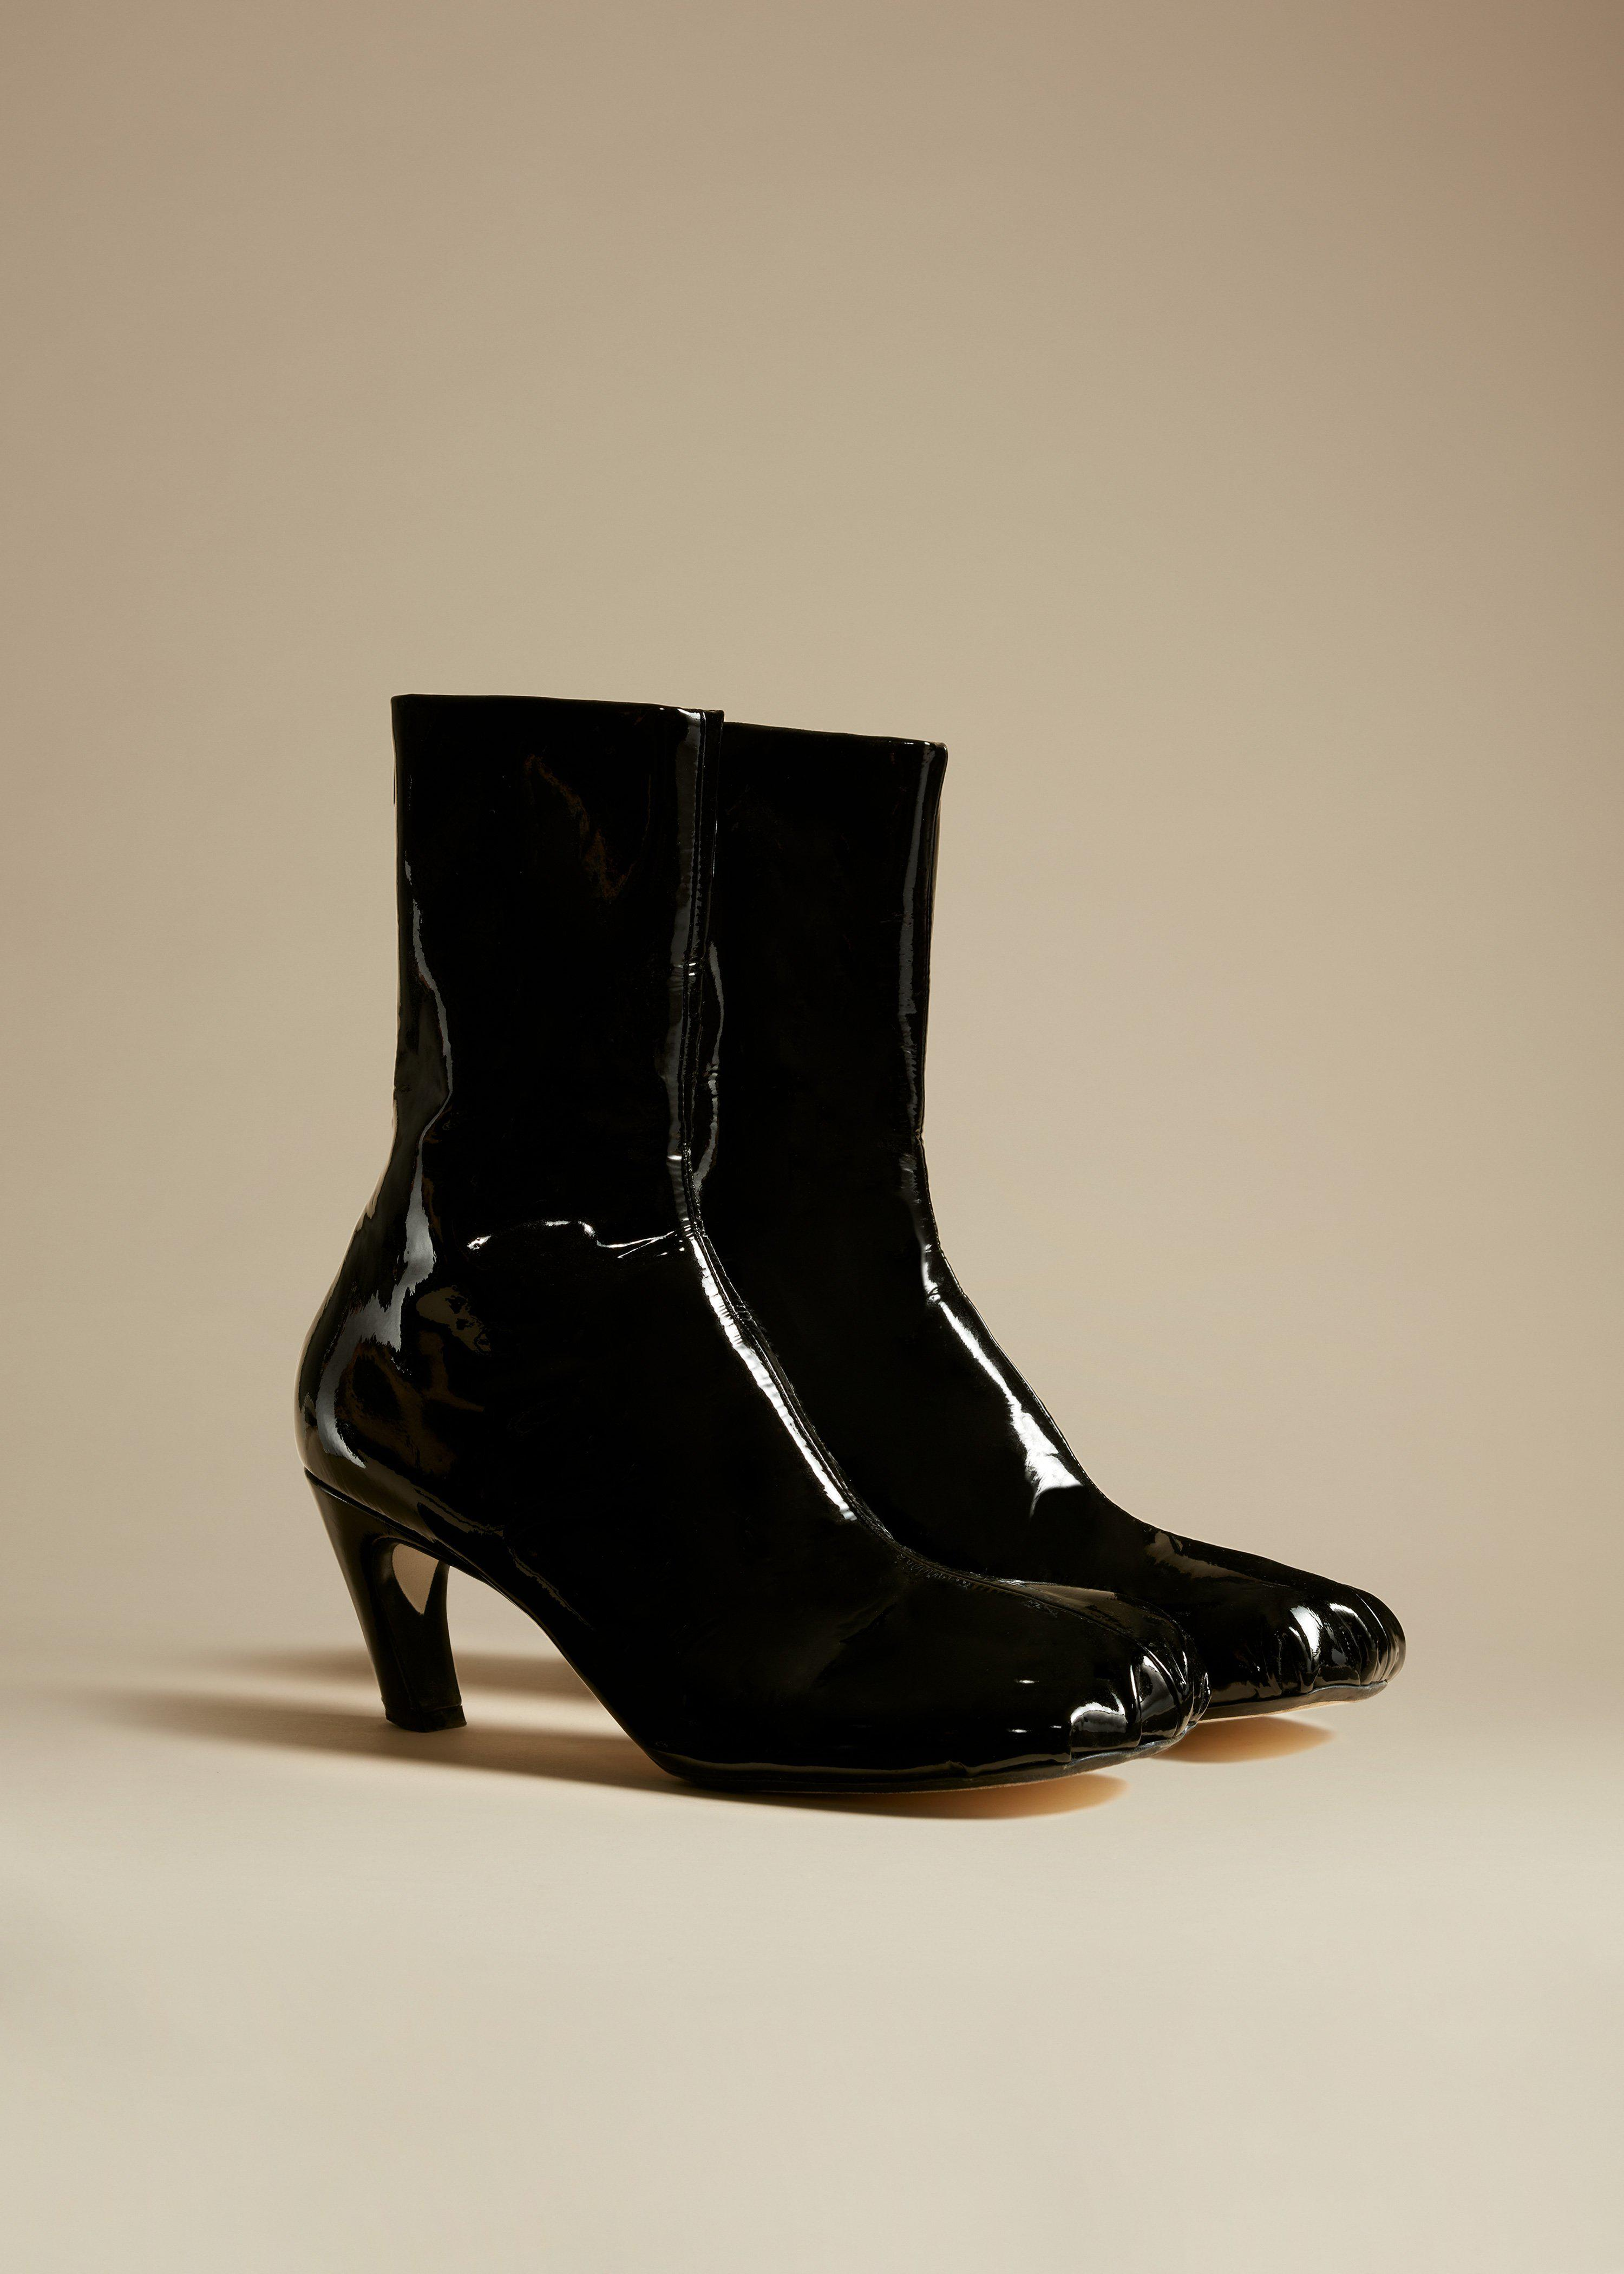 The Normandy Boot in Black Patent Leather 1